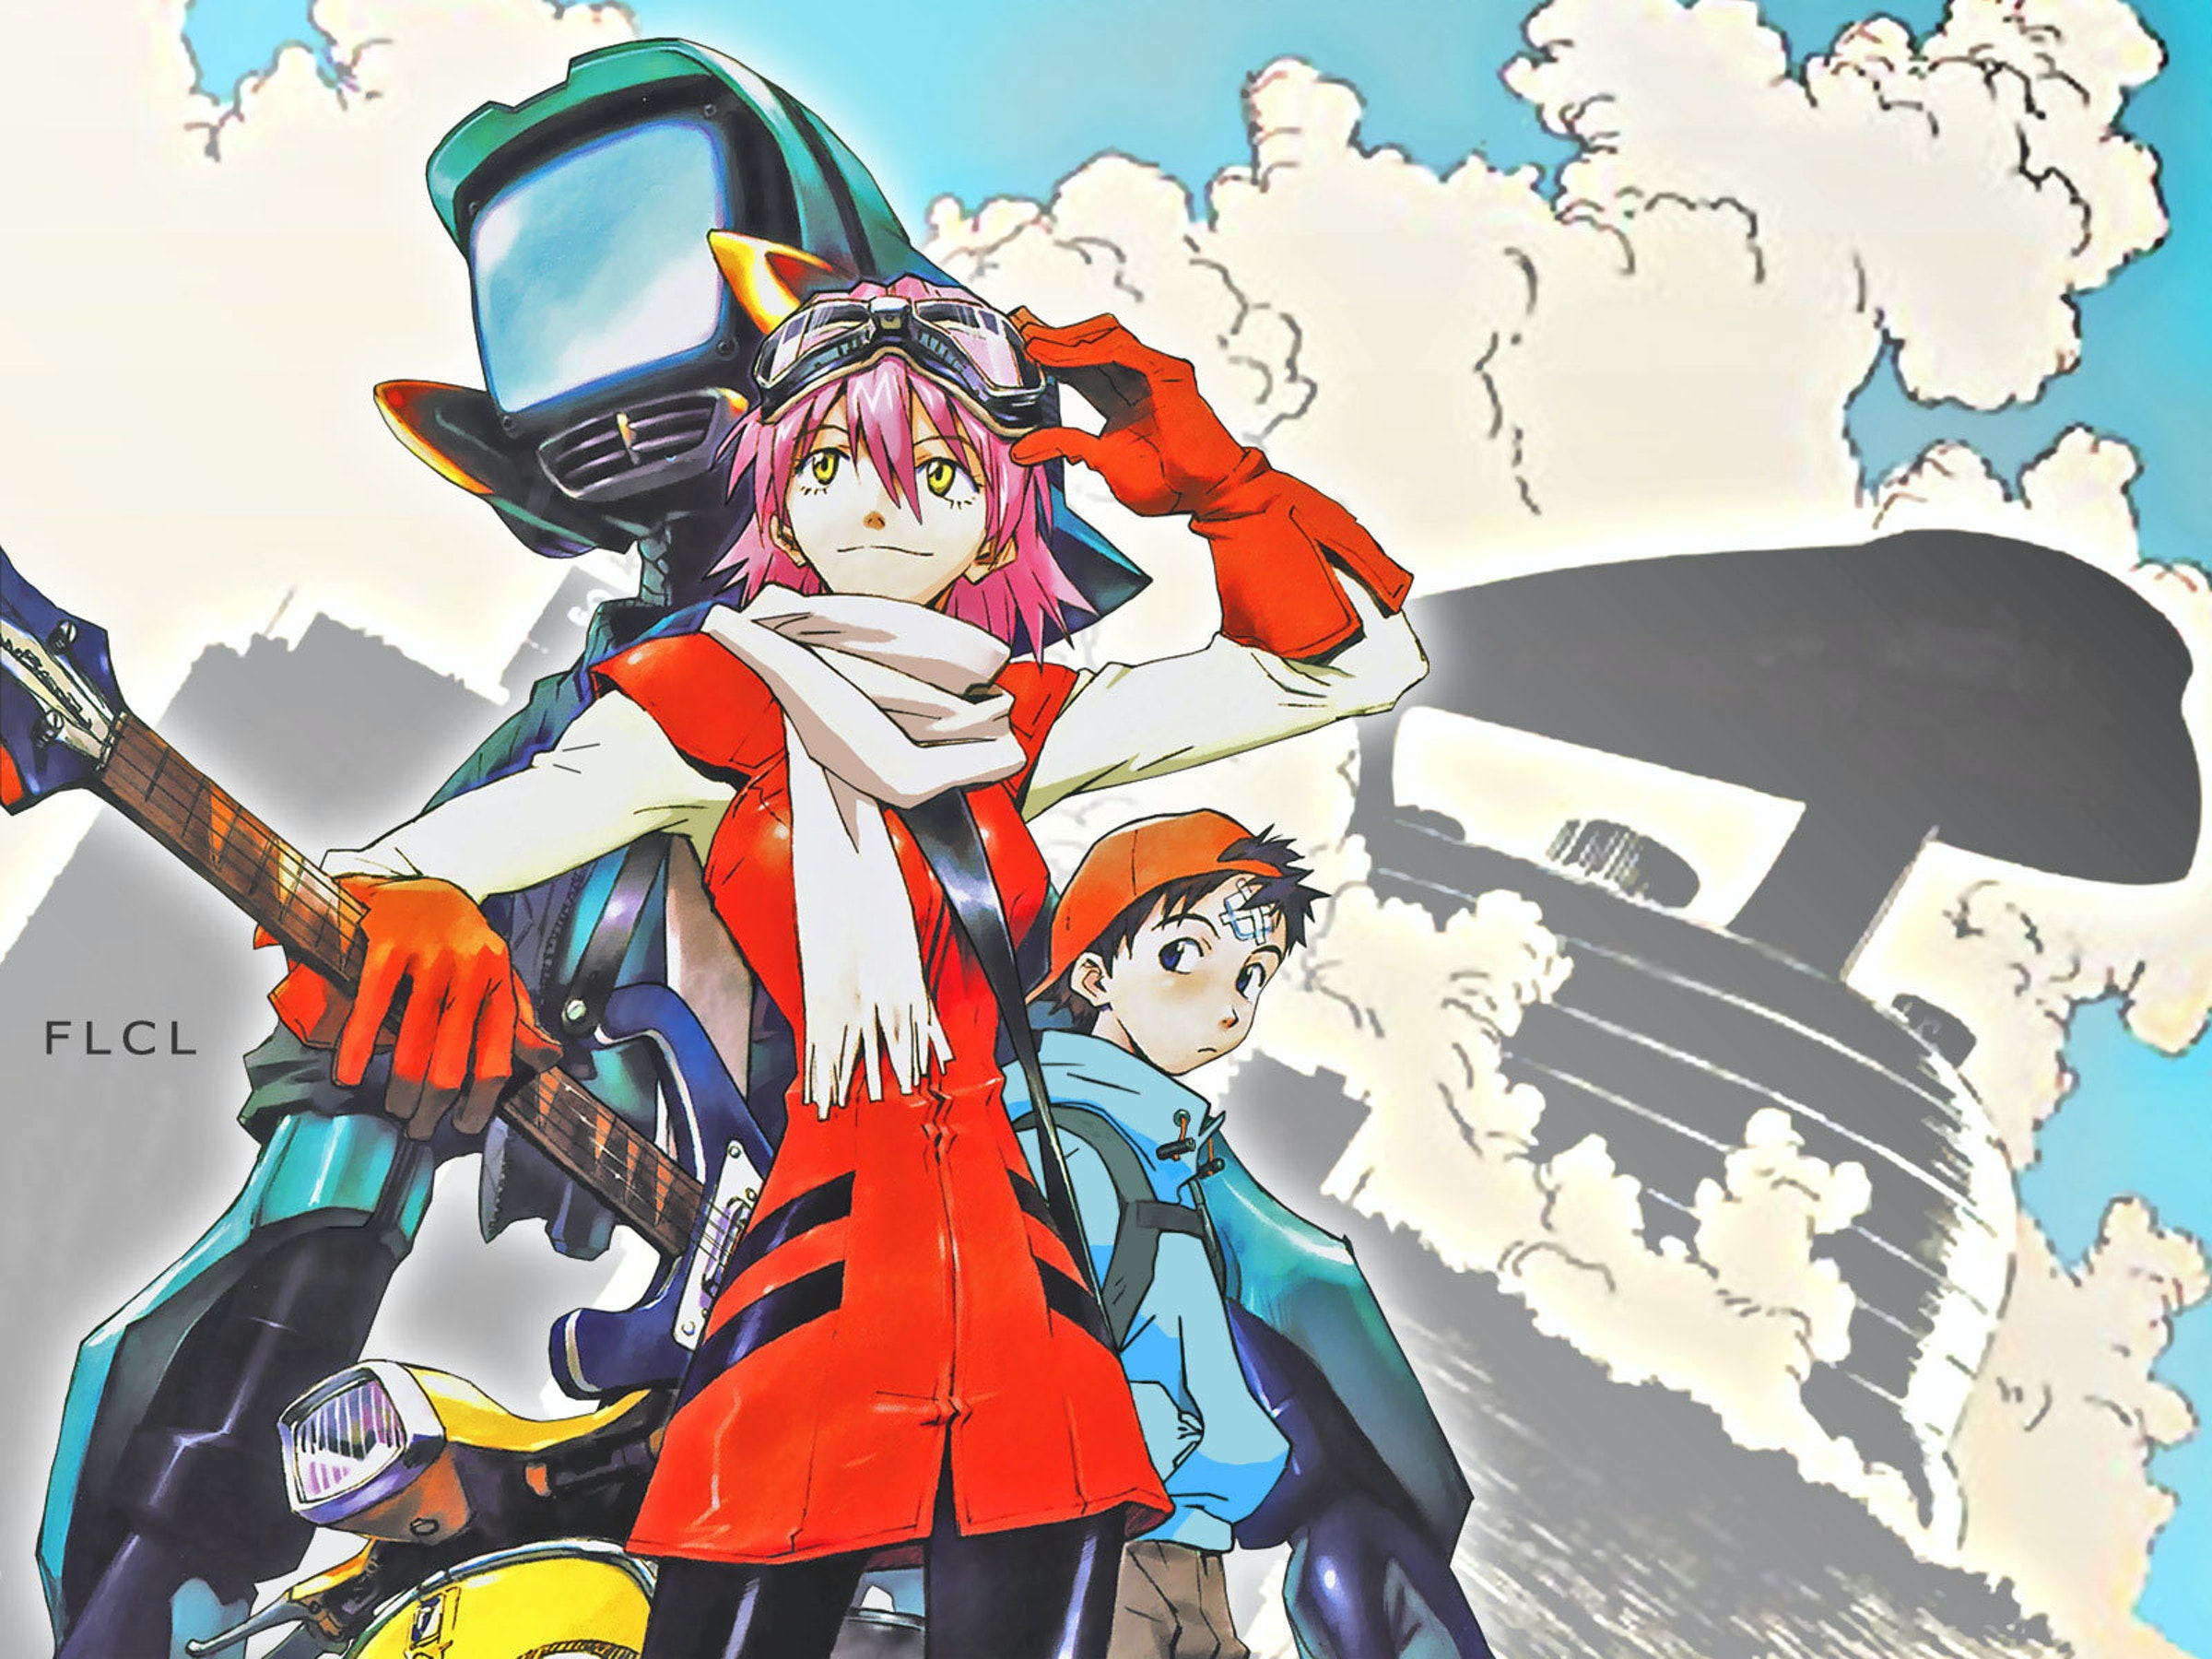 The Adult Swim 'FLCL' is Coming; Here's What To Expect